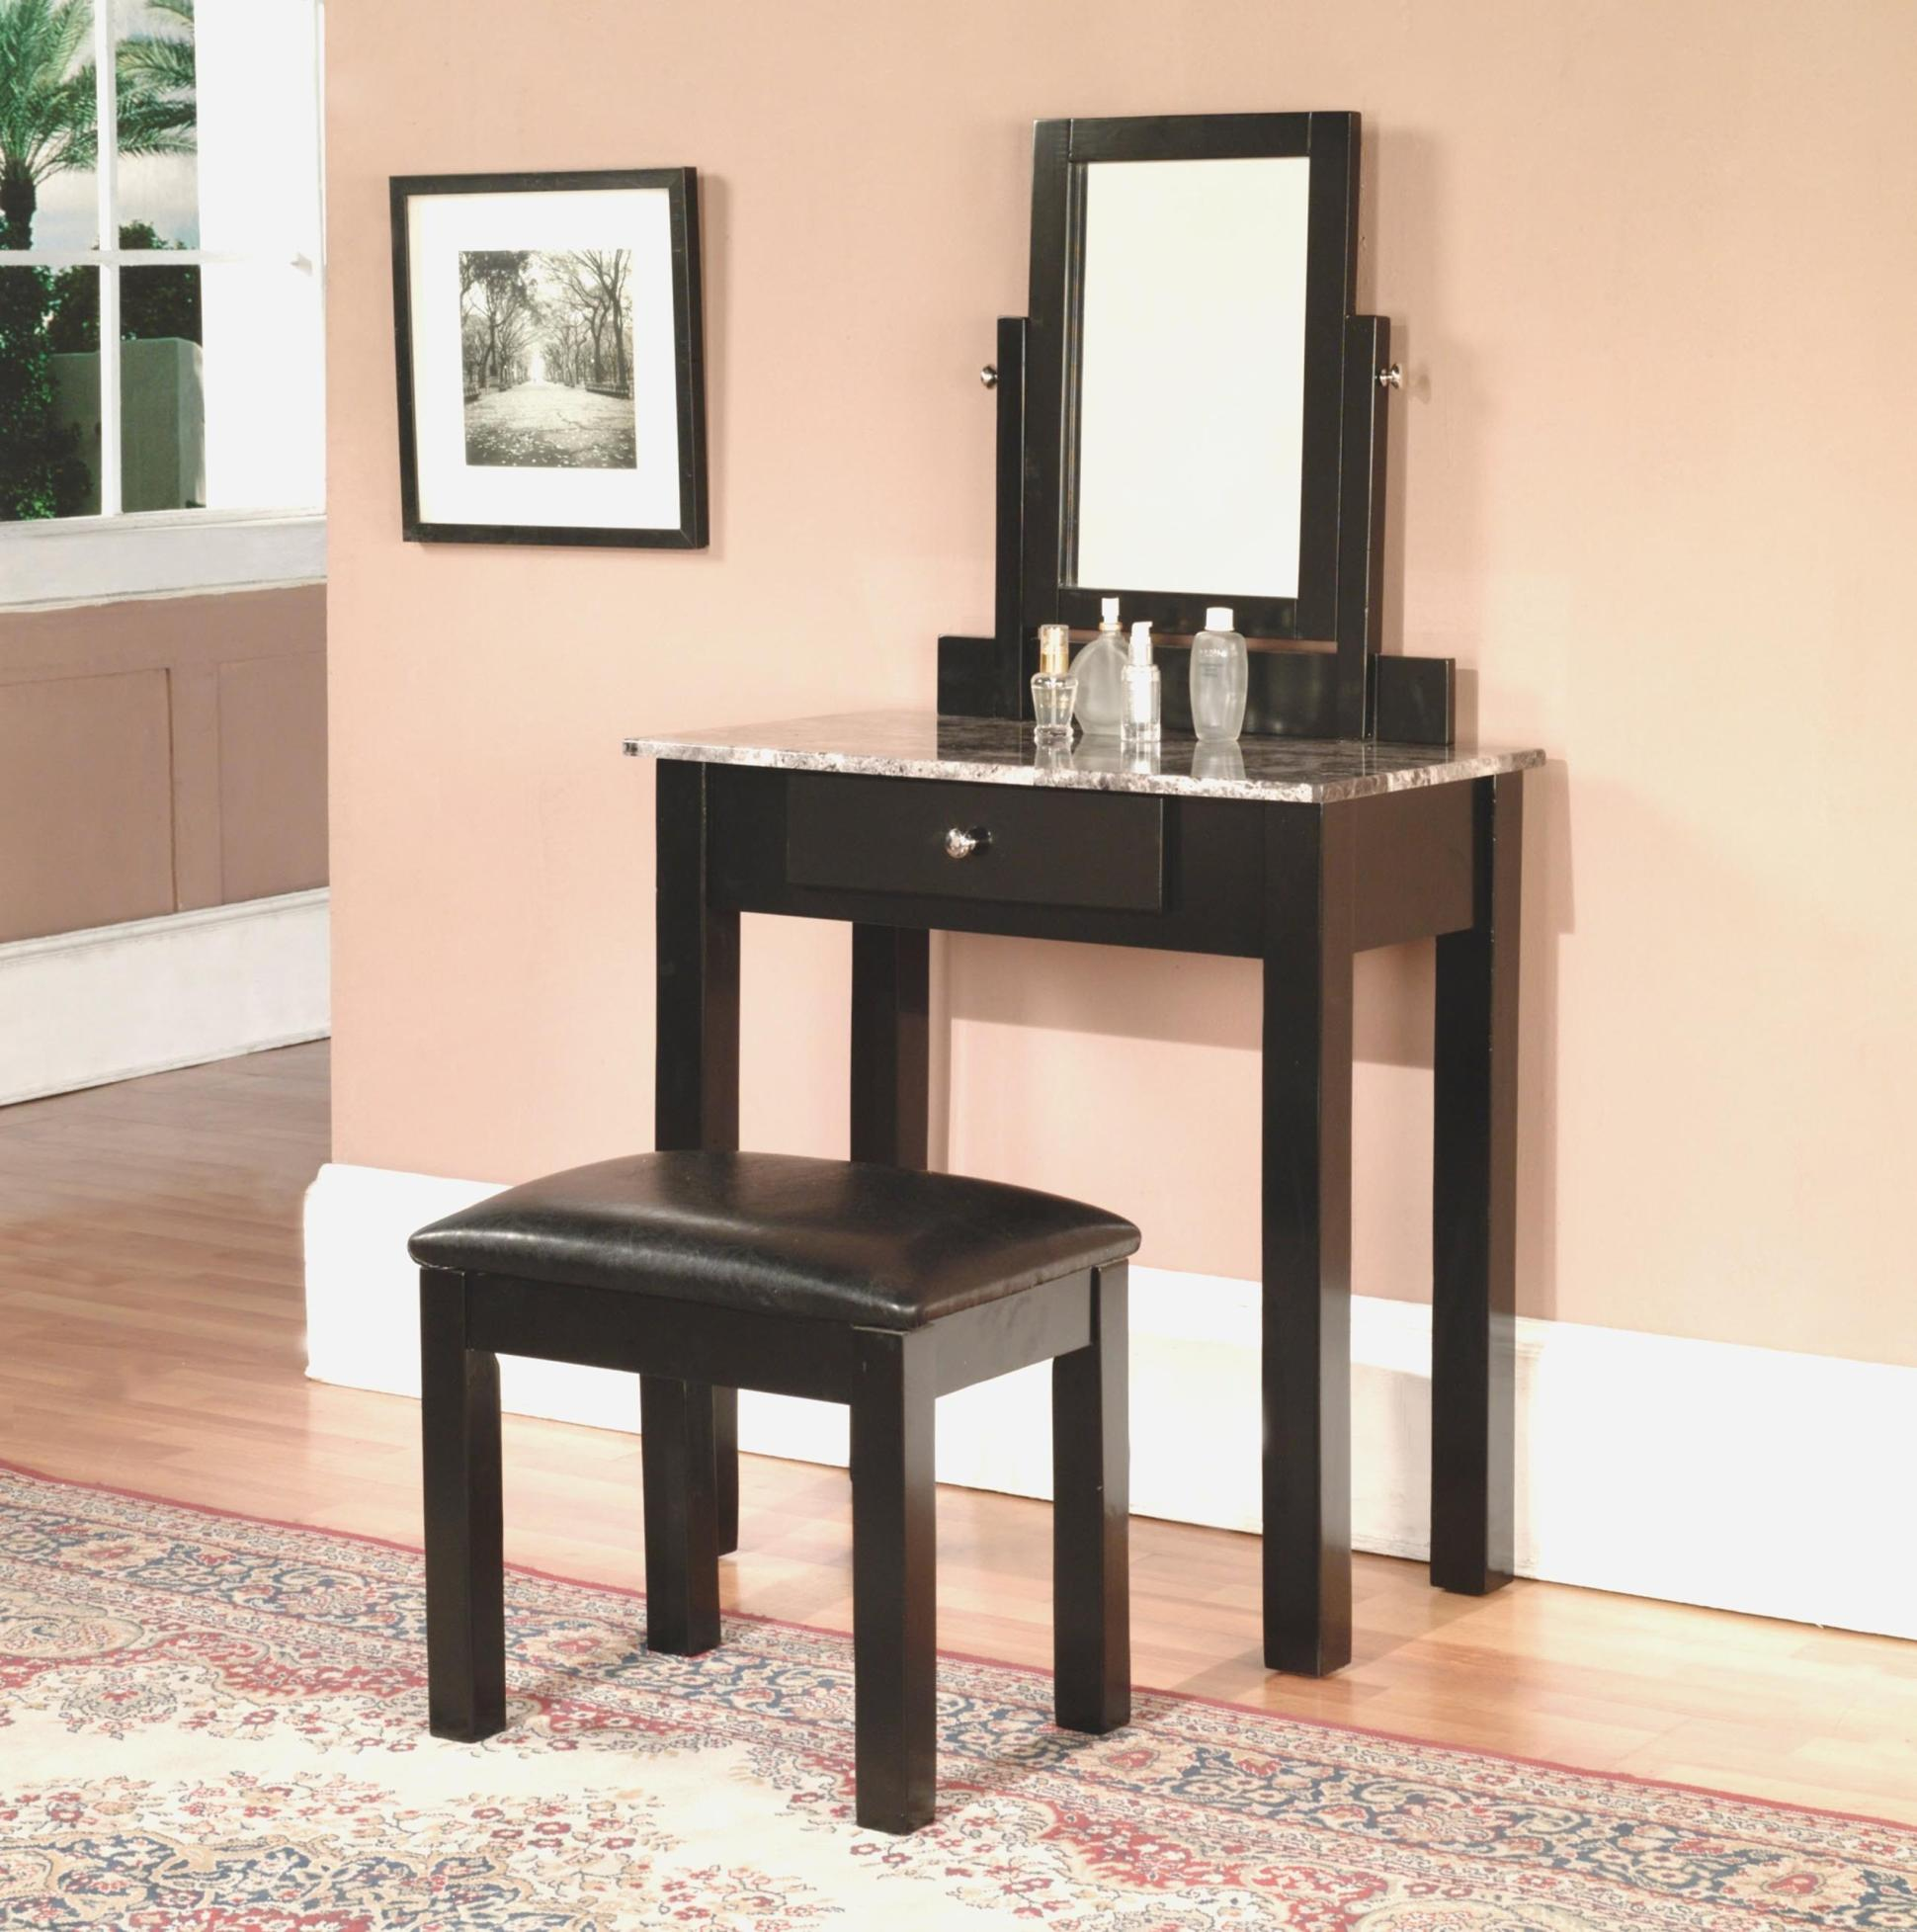 Bedroom Vanity Set With Lights Around Mirror 24